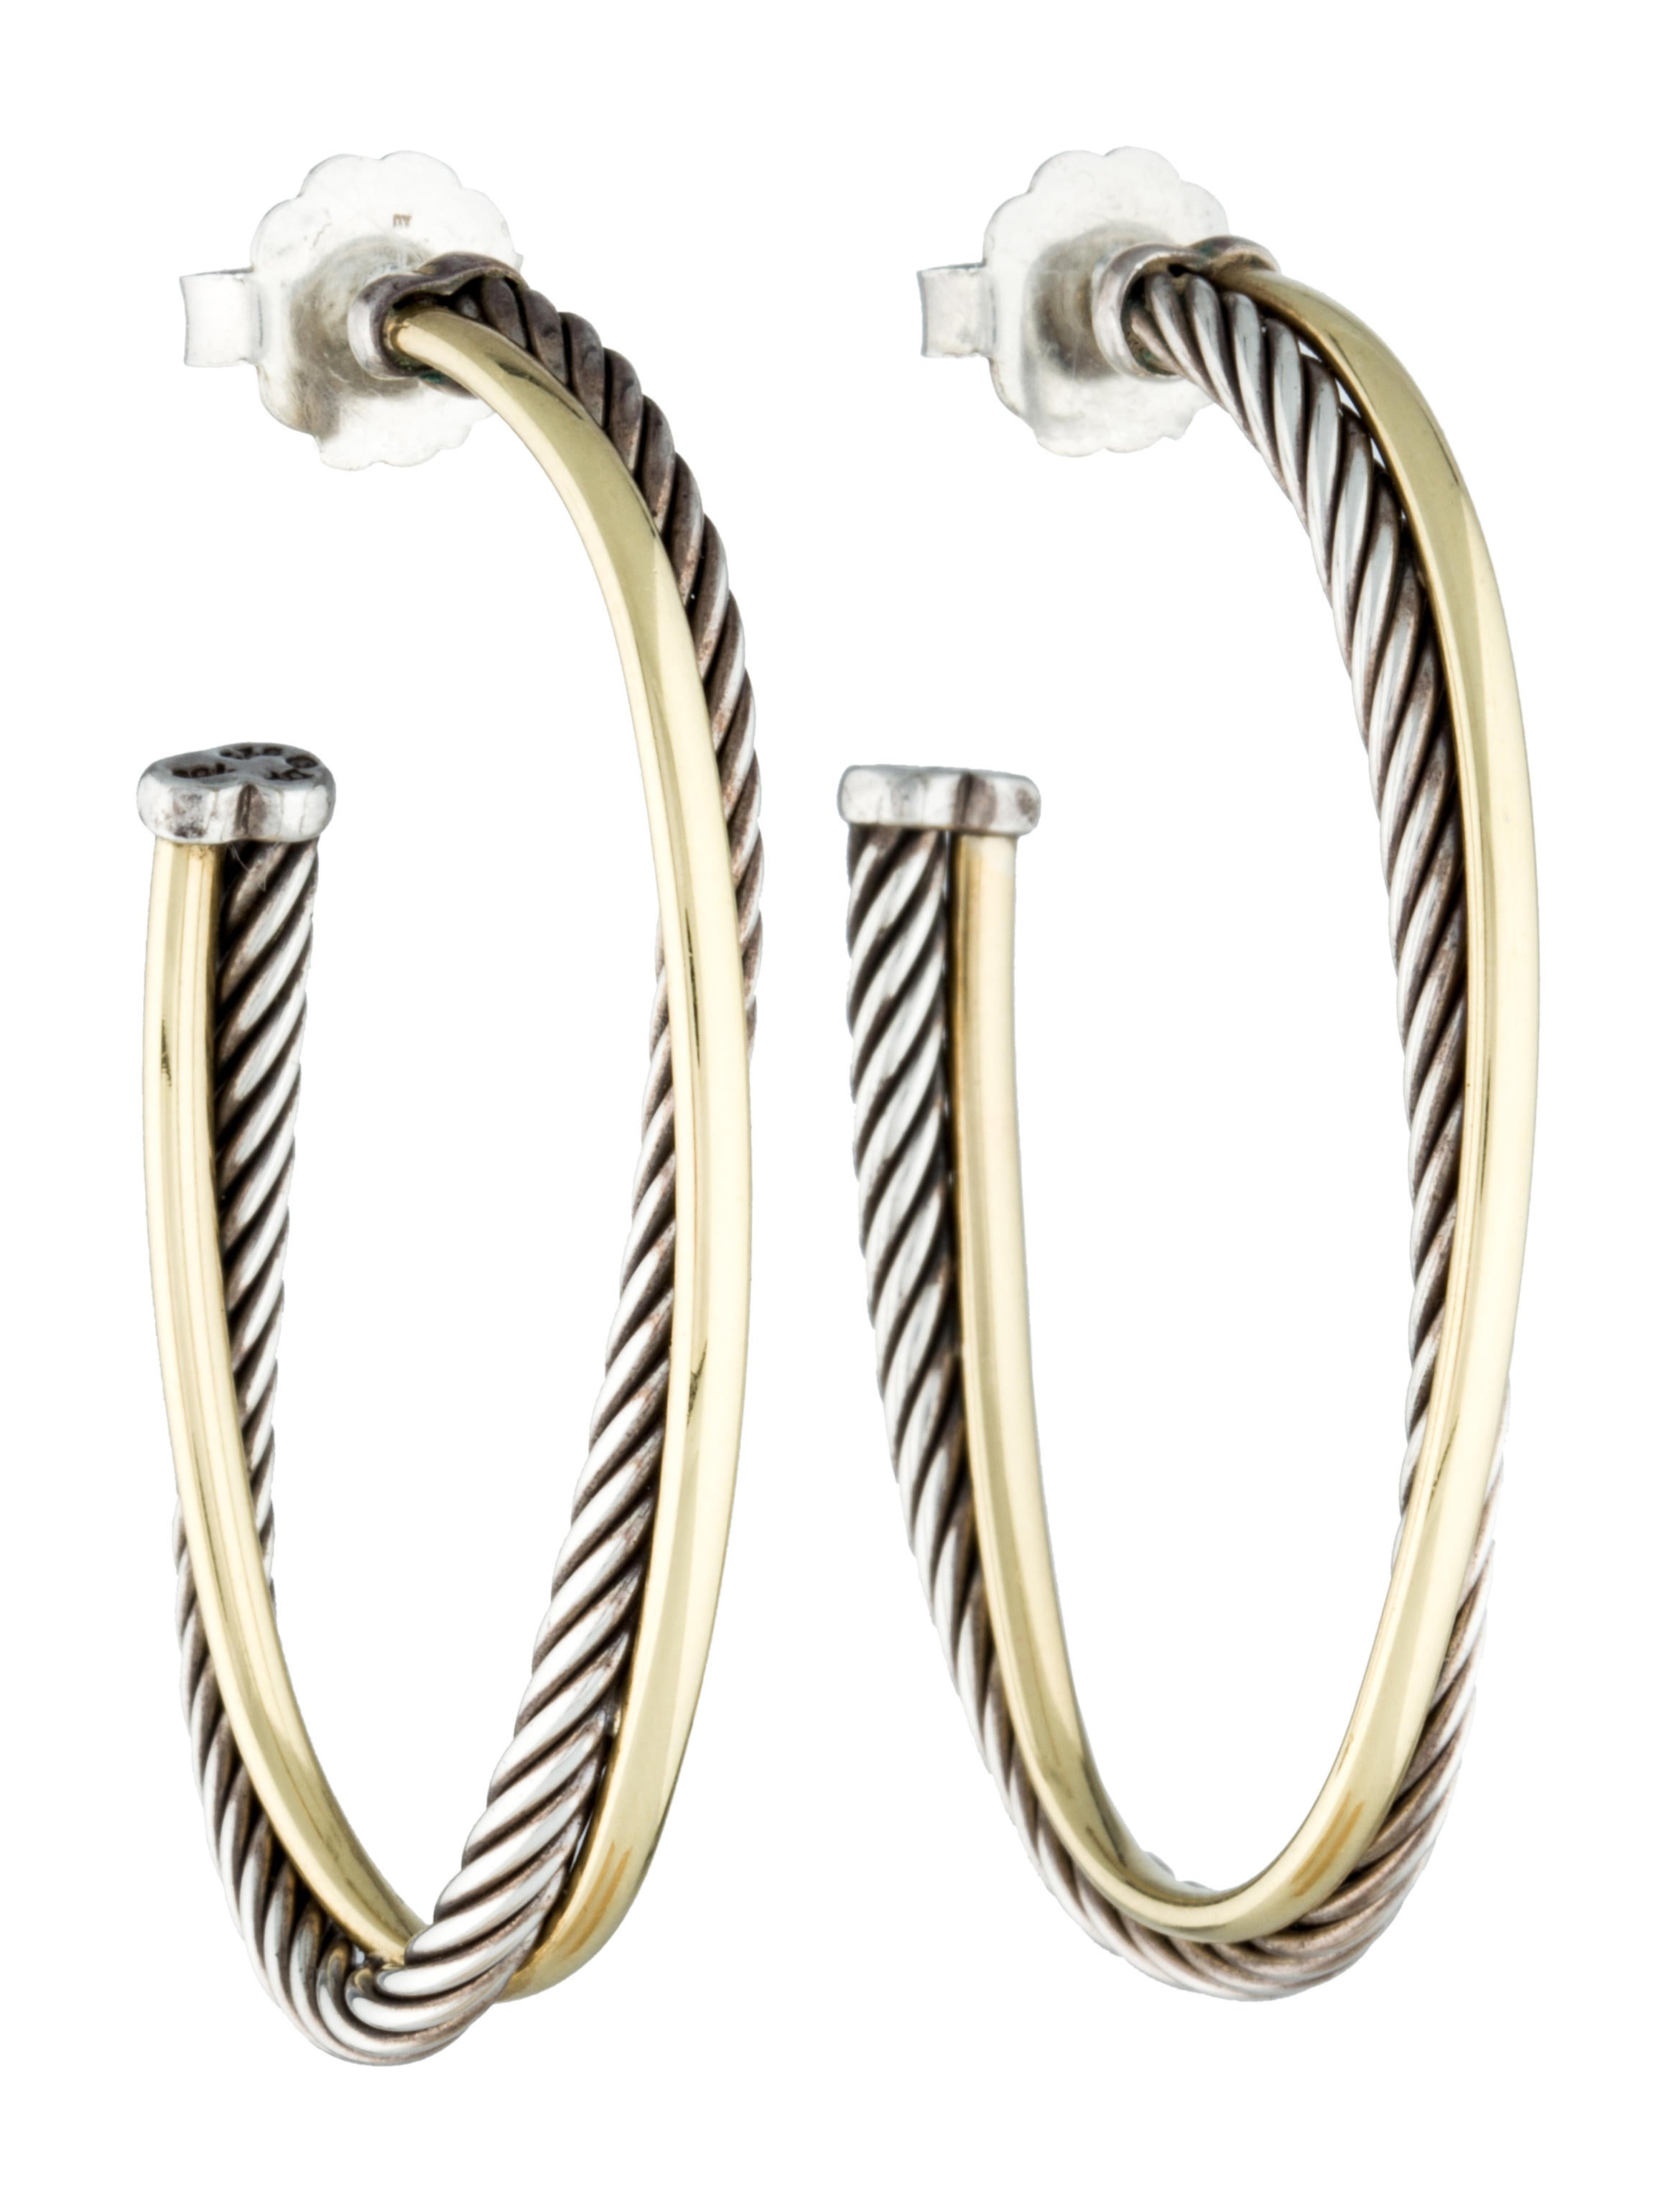 David Yurman Crossover Hoop Earrings - Jewelry - DVY25509 | The RealReal